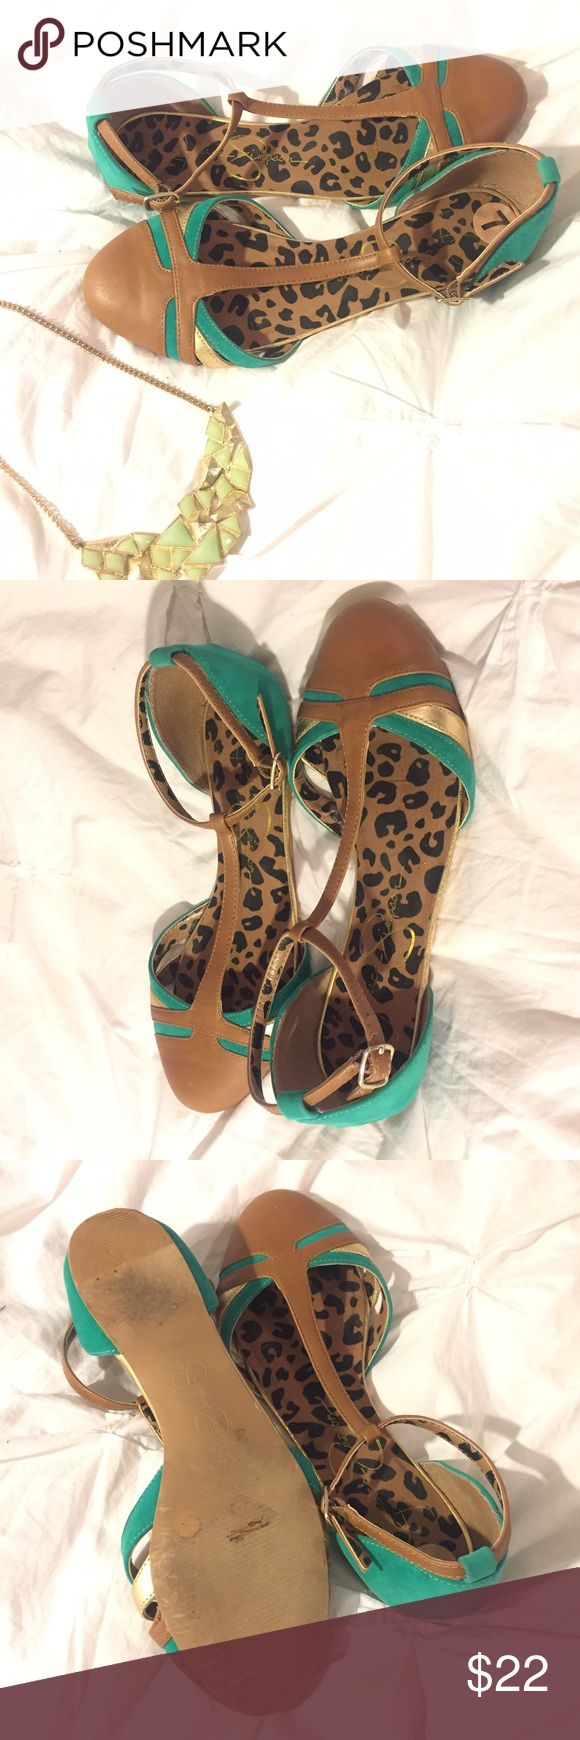 jessica simpson // ankle strap flats EUC Jessica Simpson teal, gold, and brown flats with ankle strap. Worn once- in perfect condition without defects. Fits TTS. Jessica Simpson Shoes